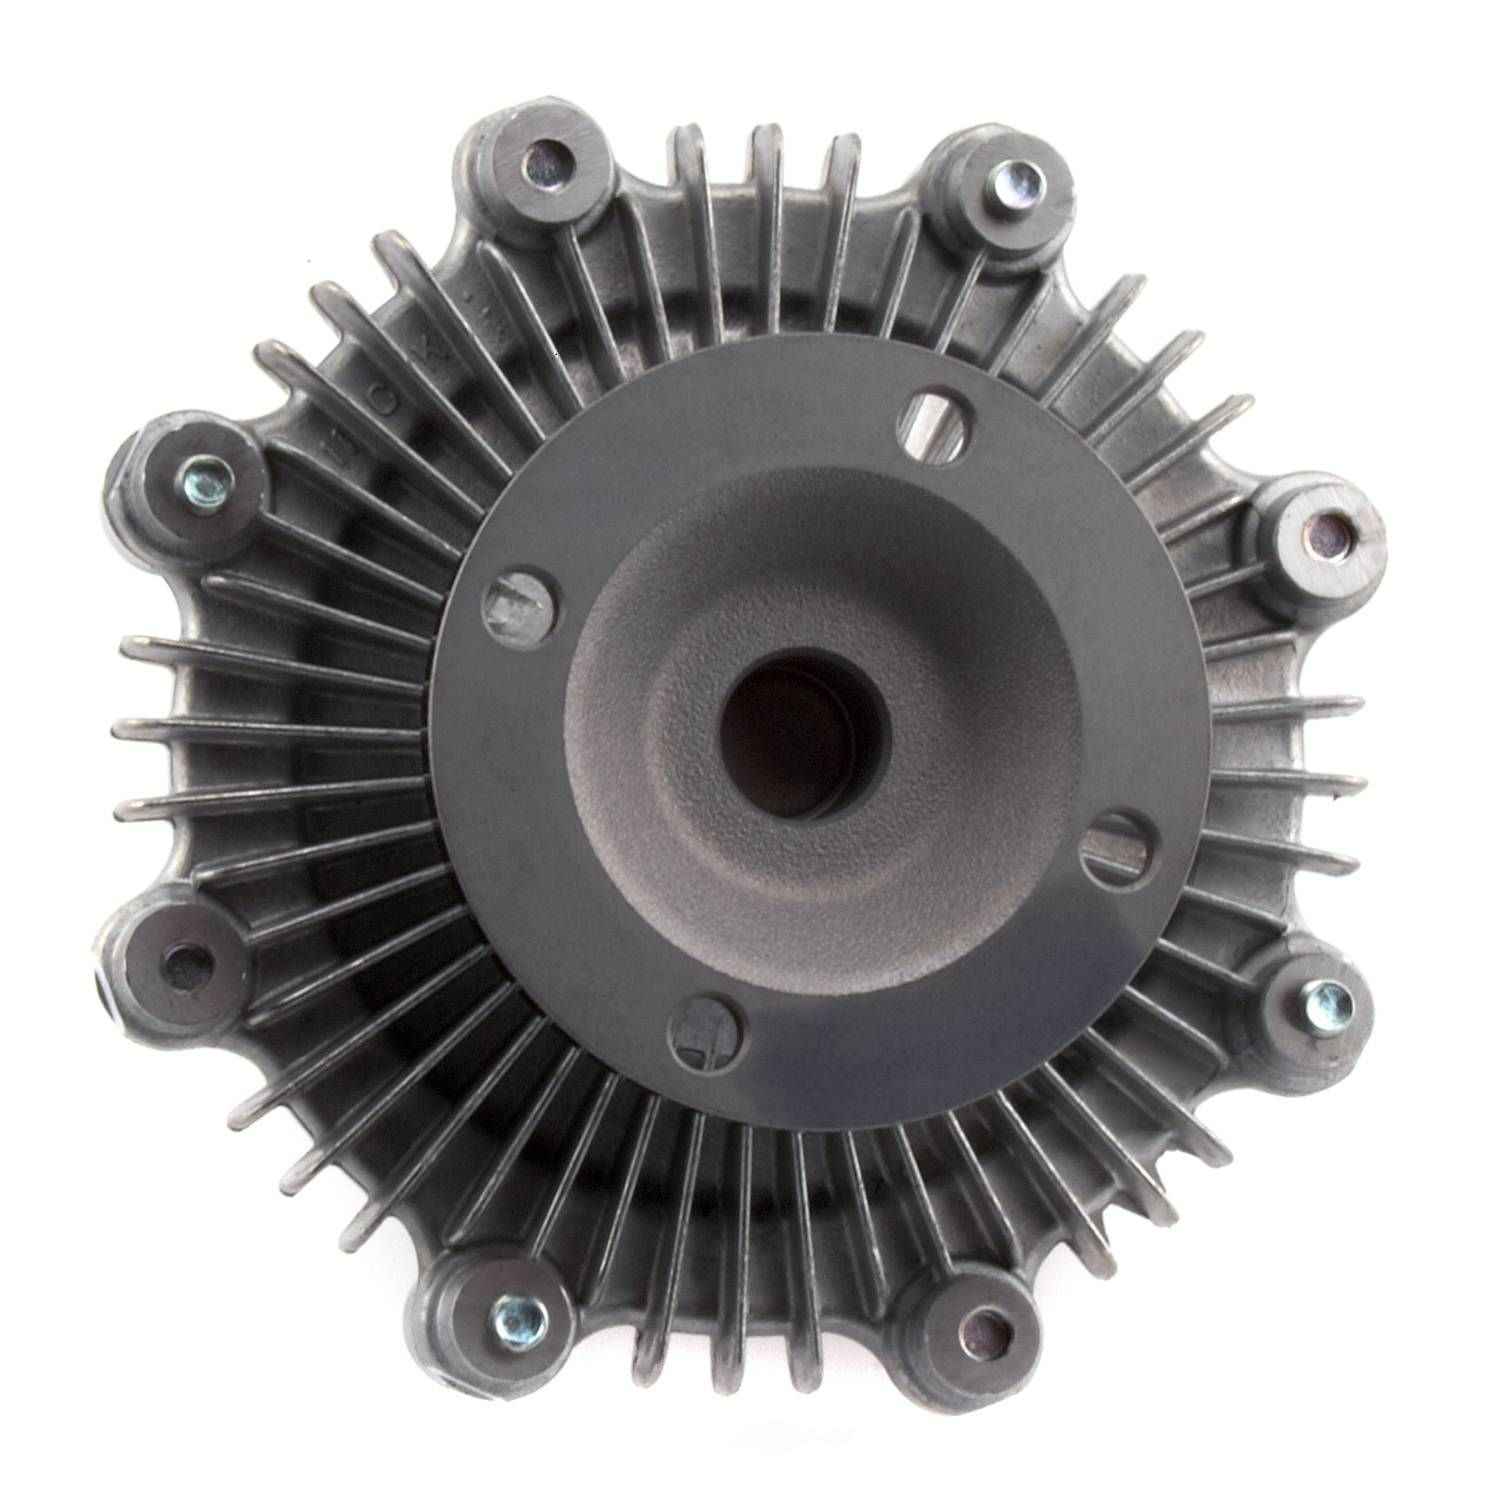 AISIN WORLD CORP. OF AMERICA - Engine Cooling Fan Clutch - AIS FCT-003